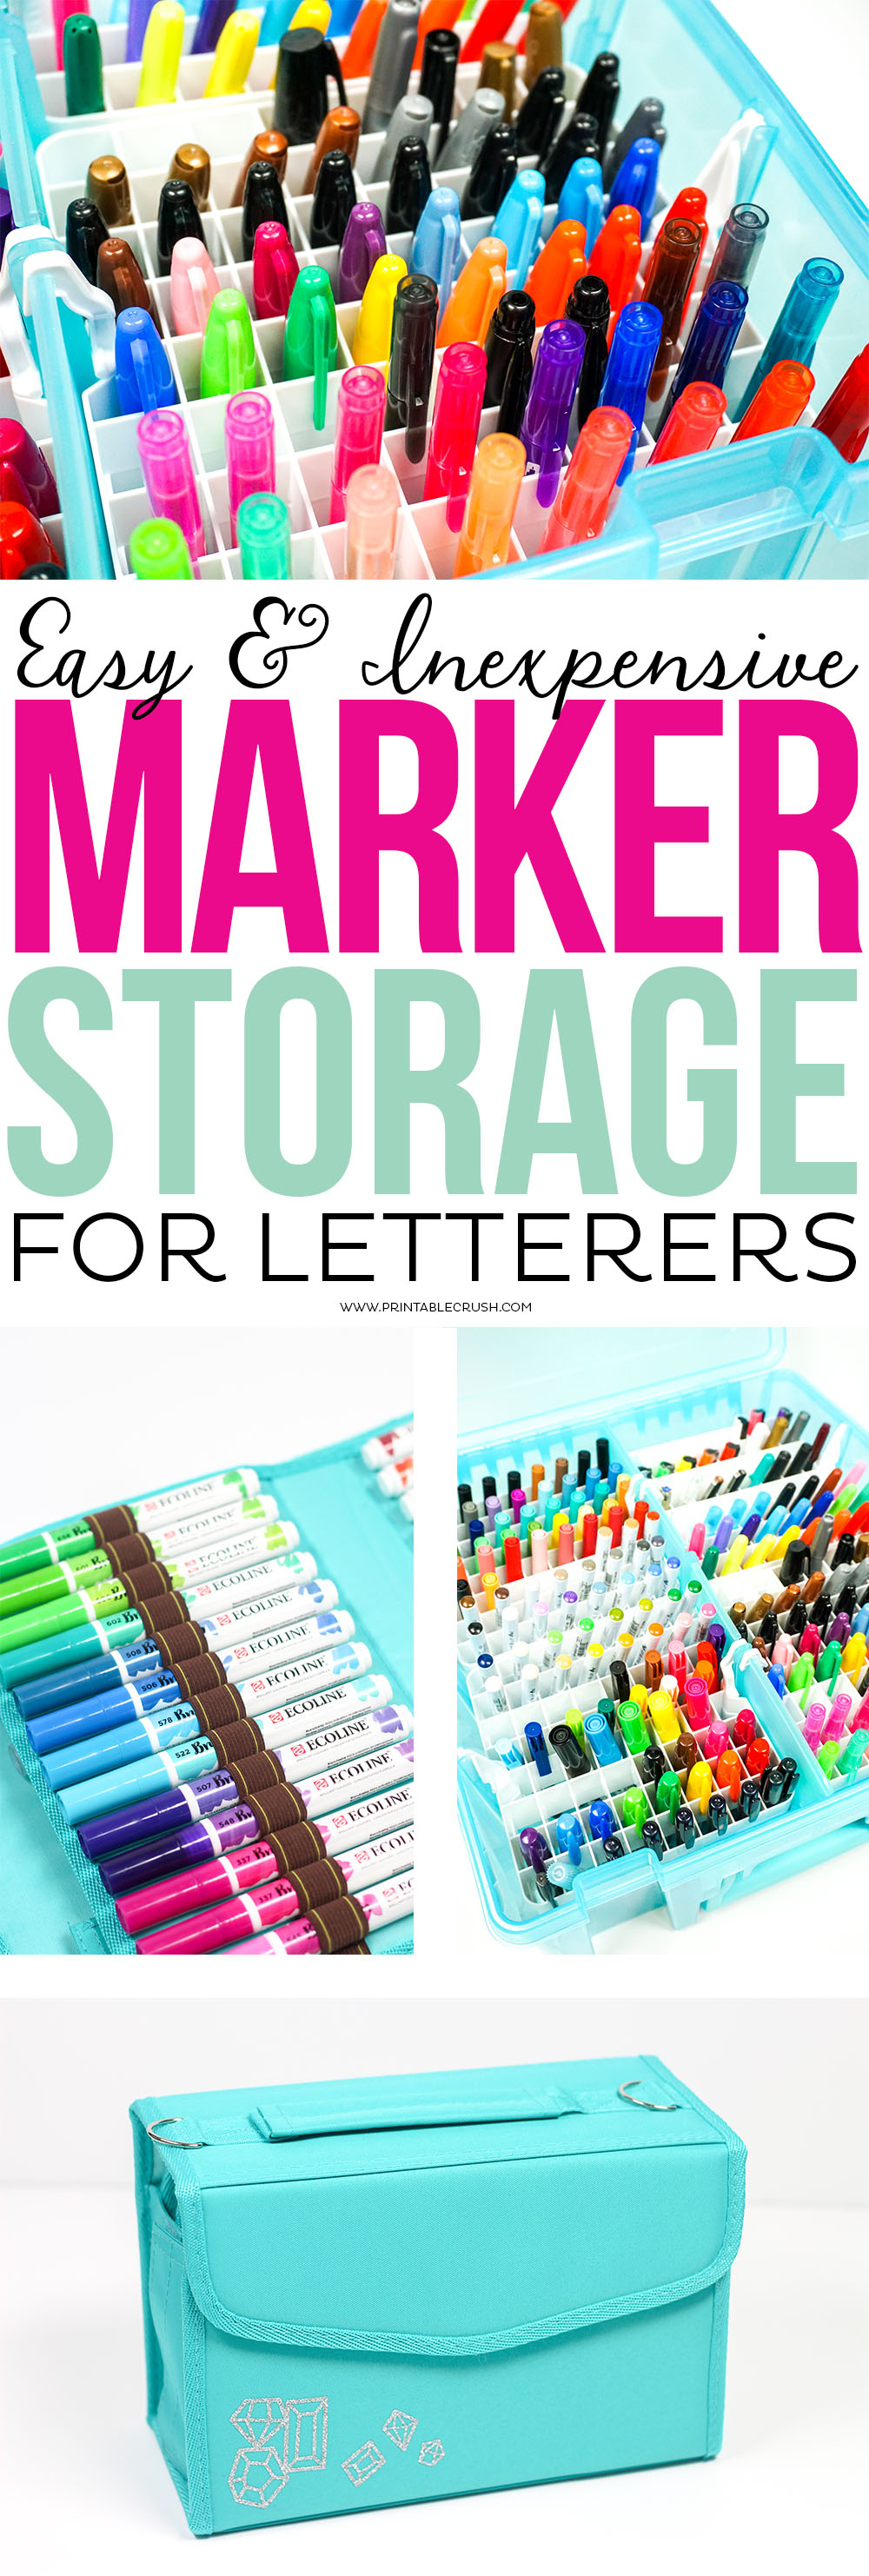 If you feel like you could be on an episode of Hoarders because of all your lettering pens, you'll love these ideas for Easy and Inexpensive Marker Storage for Letterers! via @printablecrush